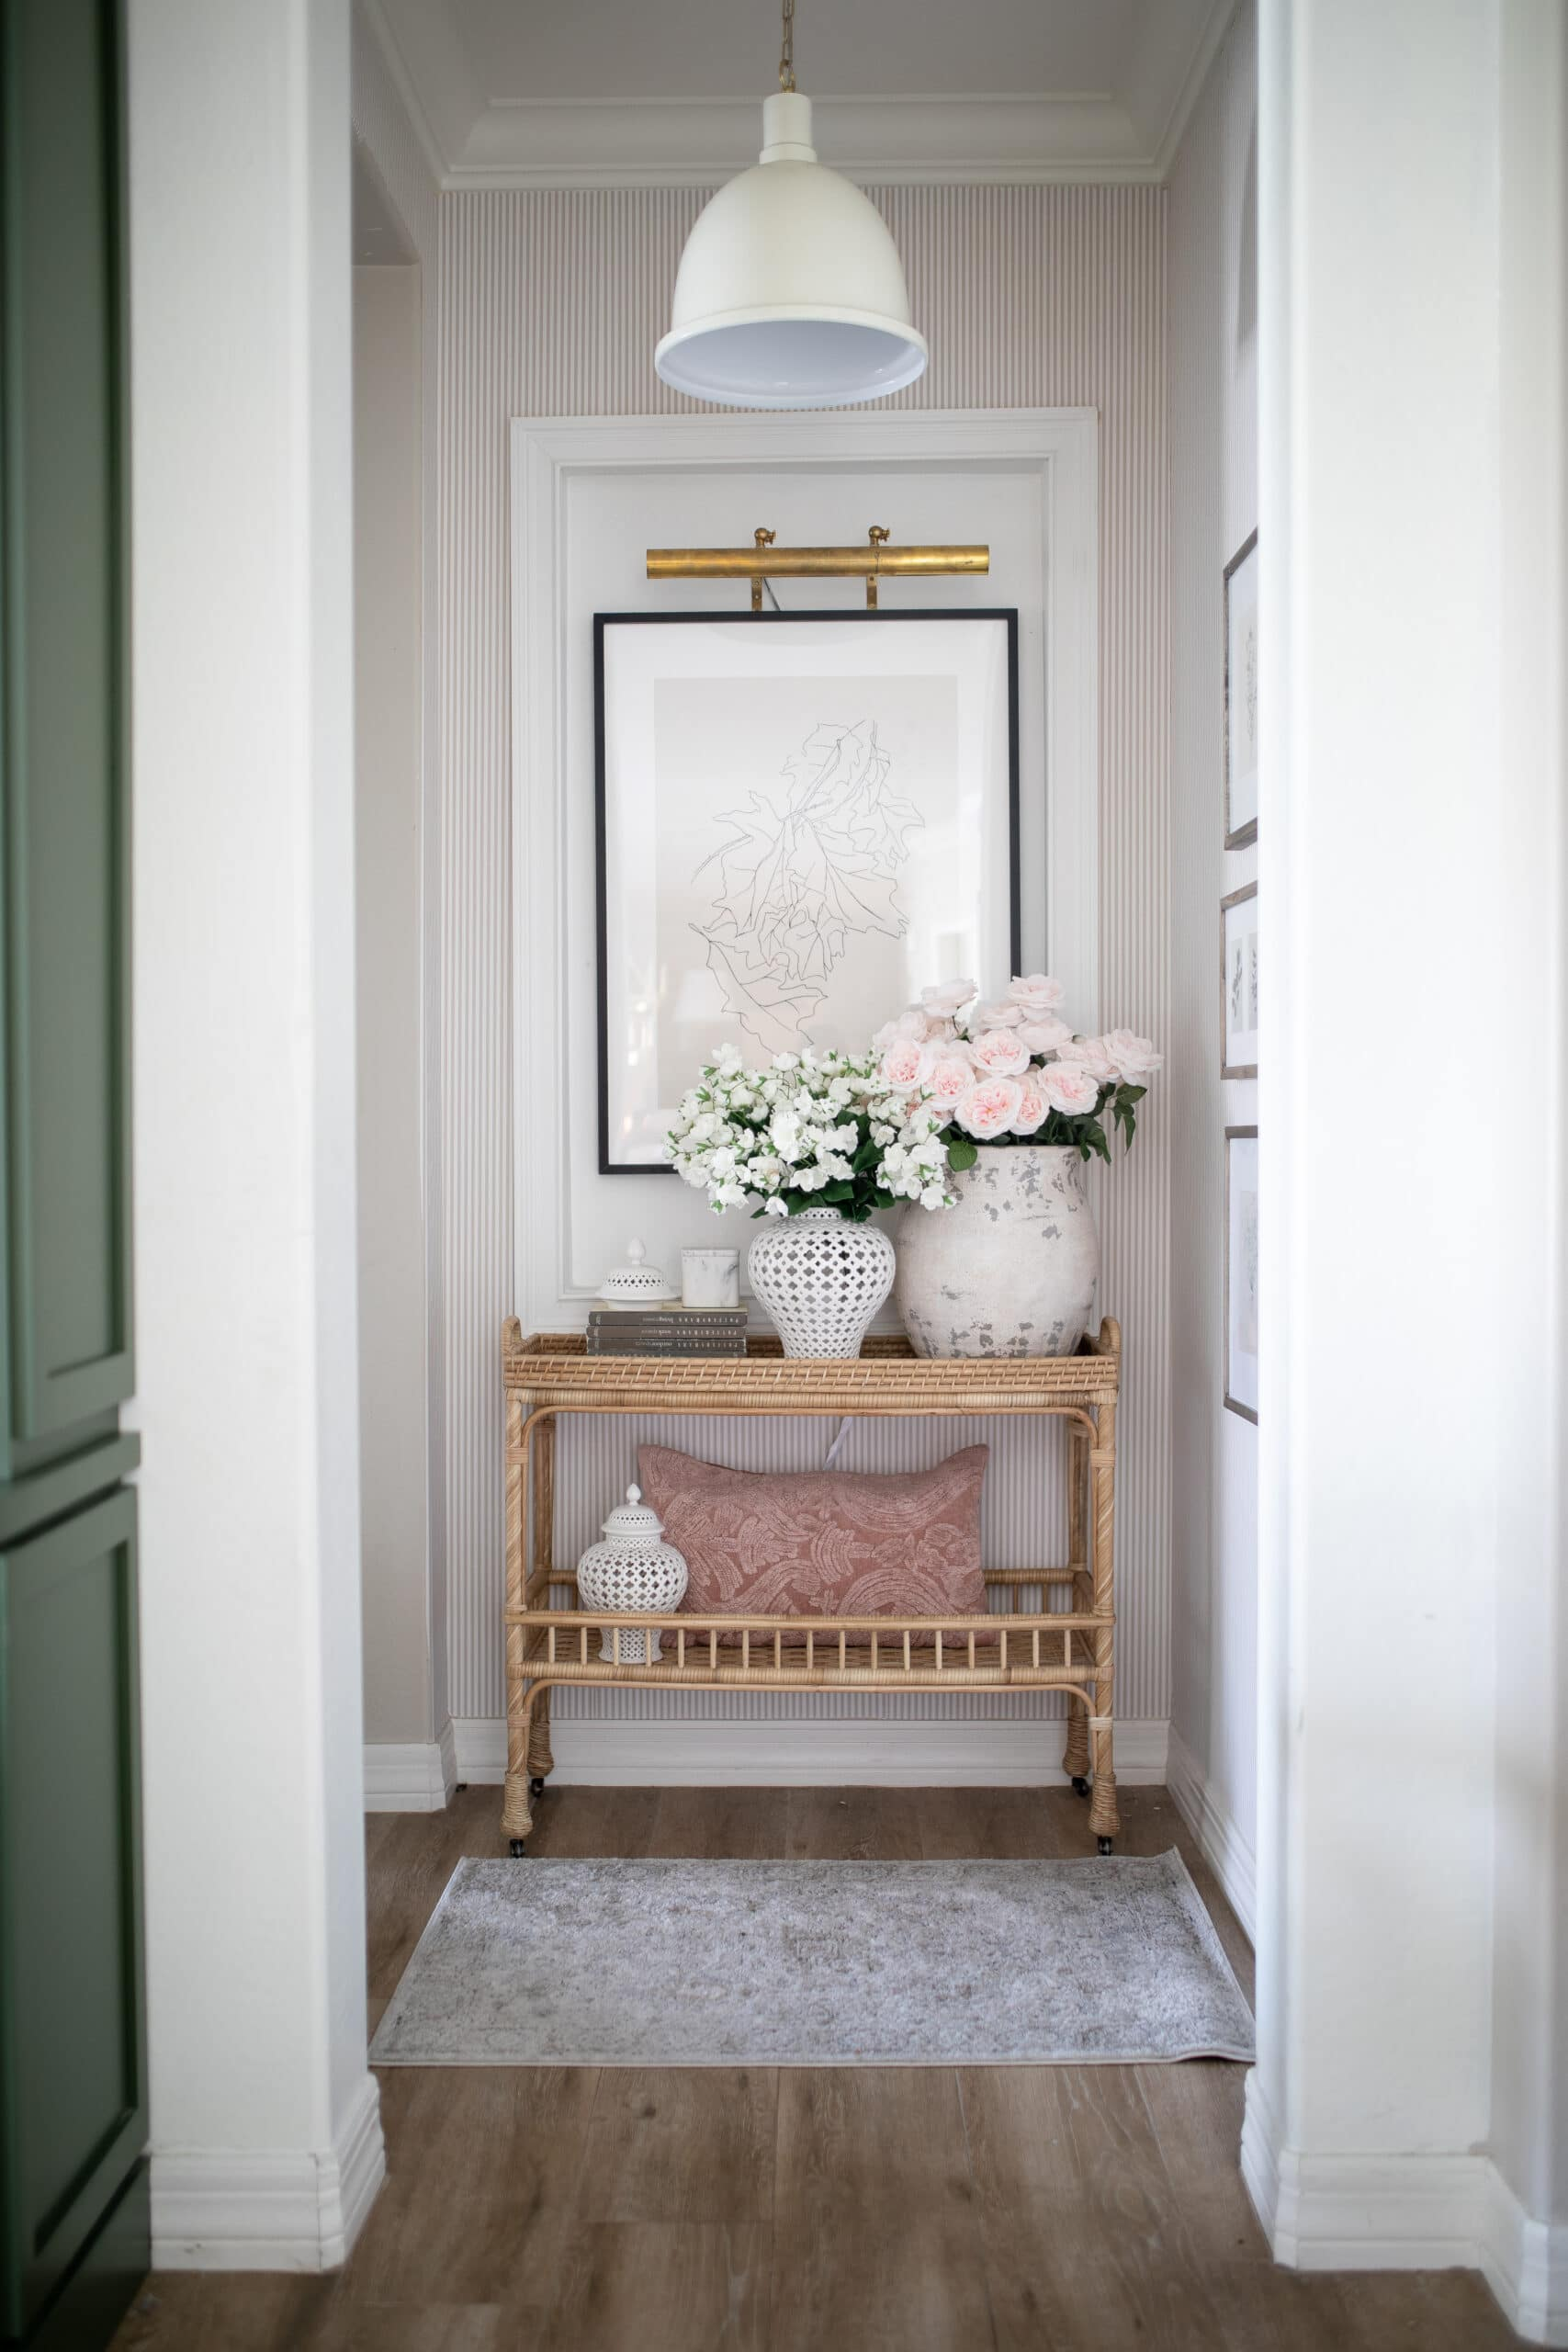 Hallway Decor Ideas with a rattan table from Serena and Lily